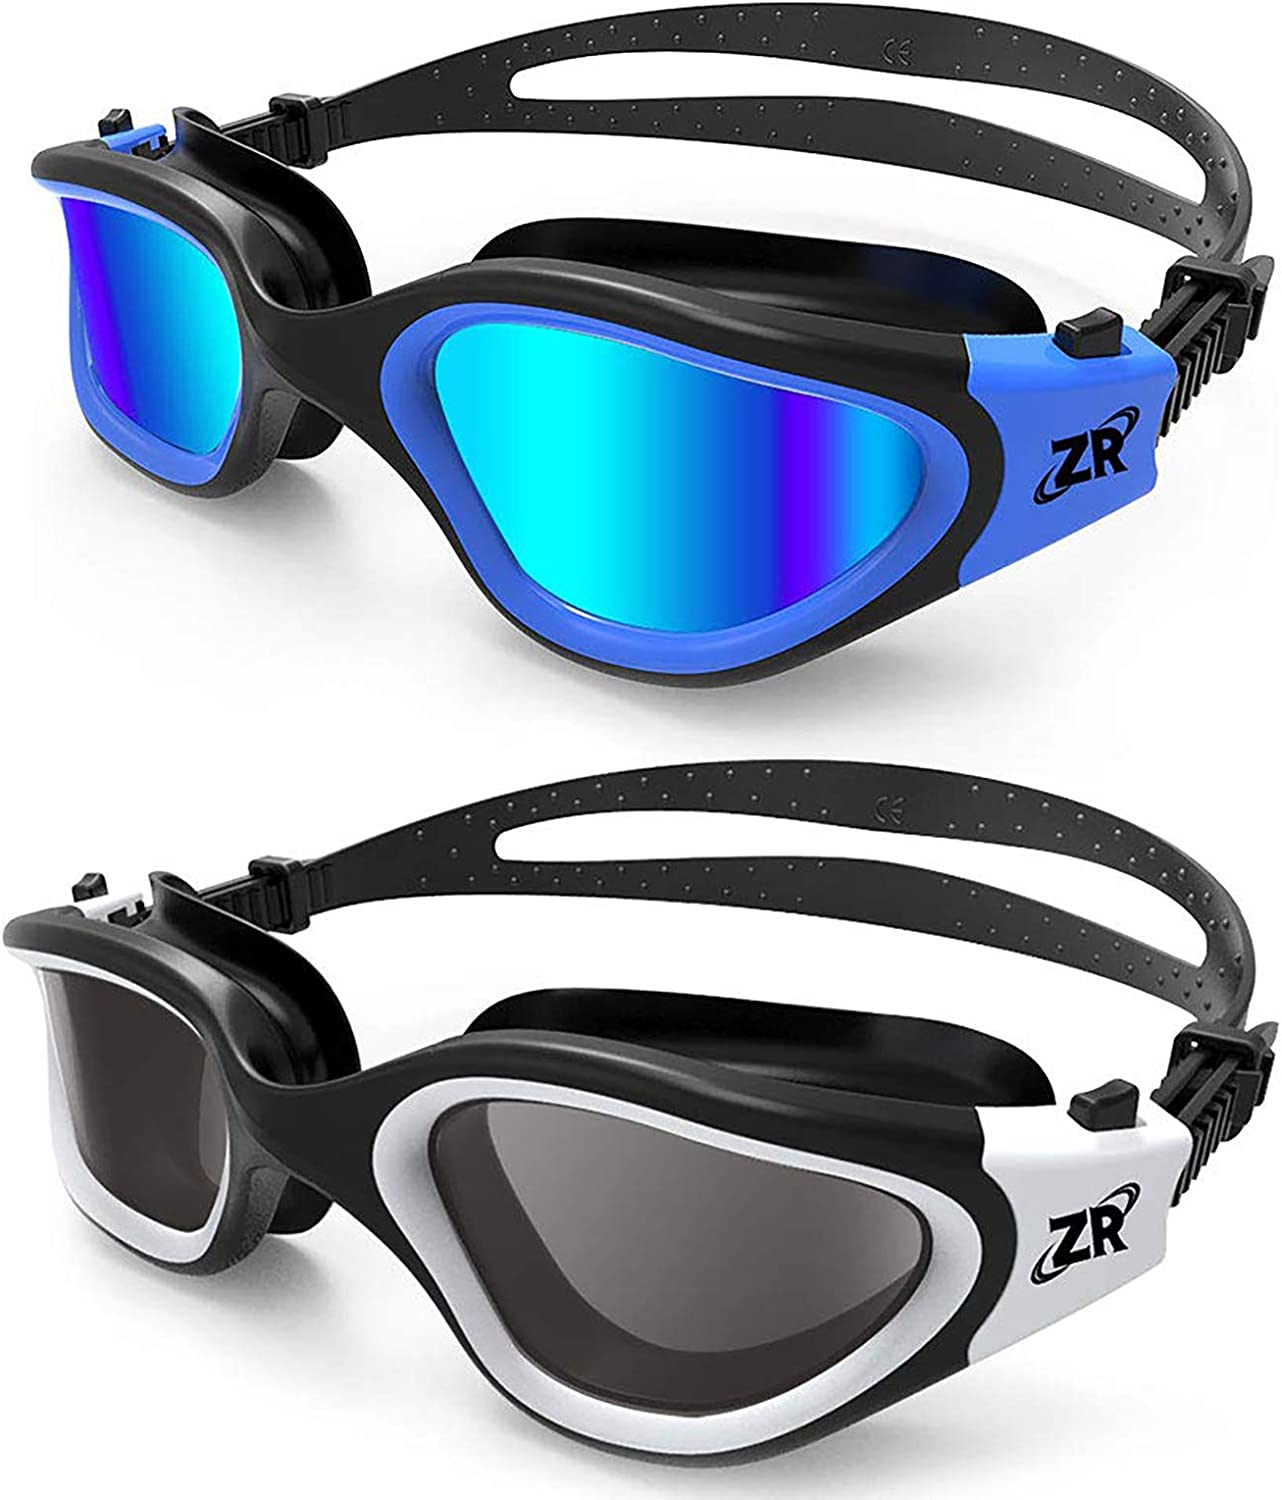 ZIONOR Swim Goggles 2 Packs Max 68% OFF G1 A for Swimming Super popular specialty store Polarized